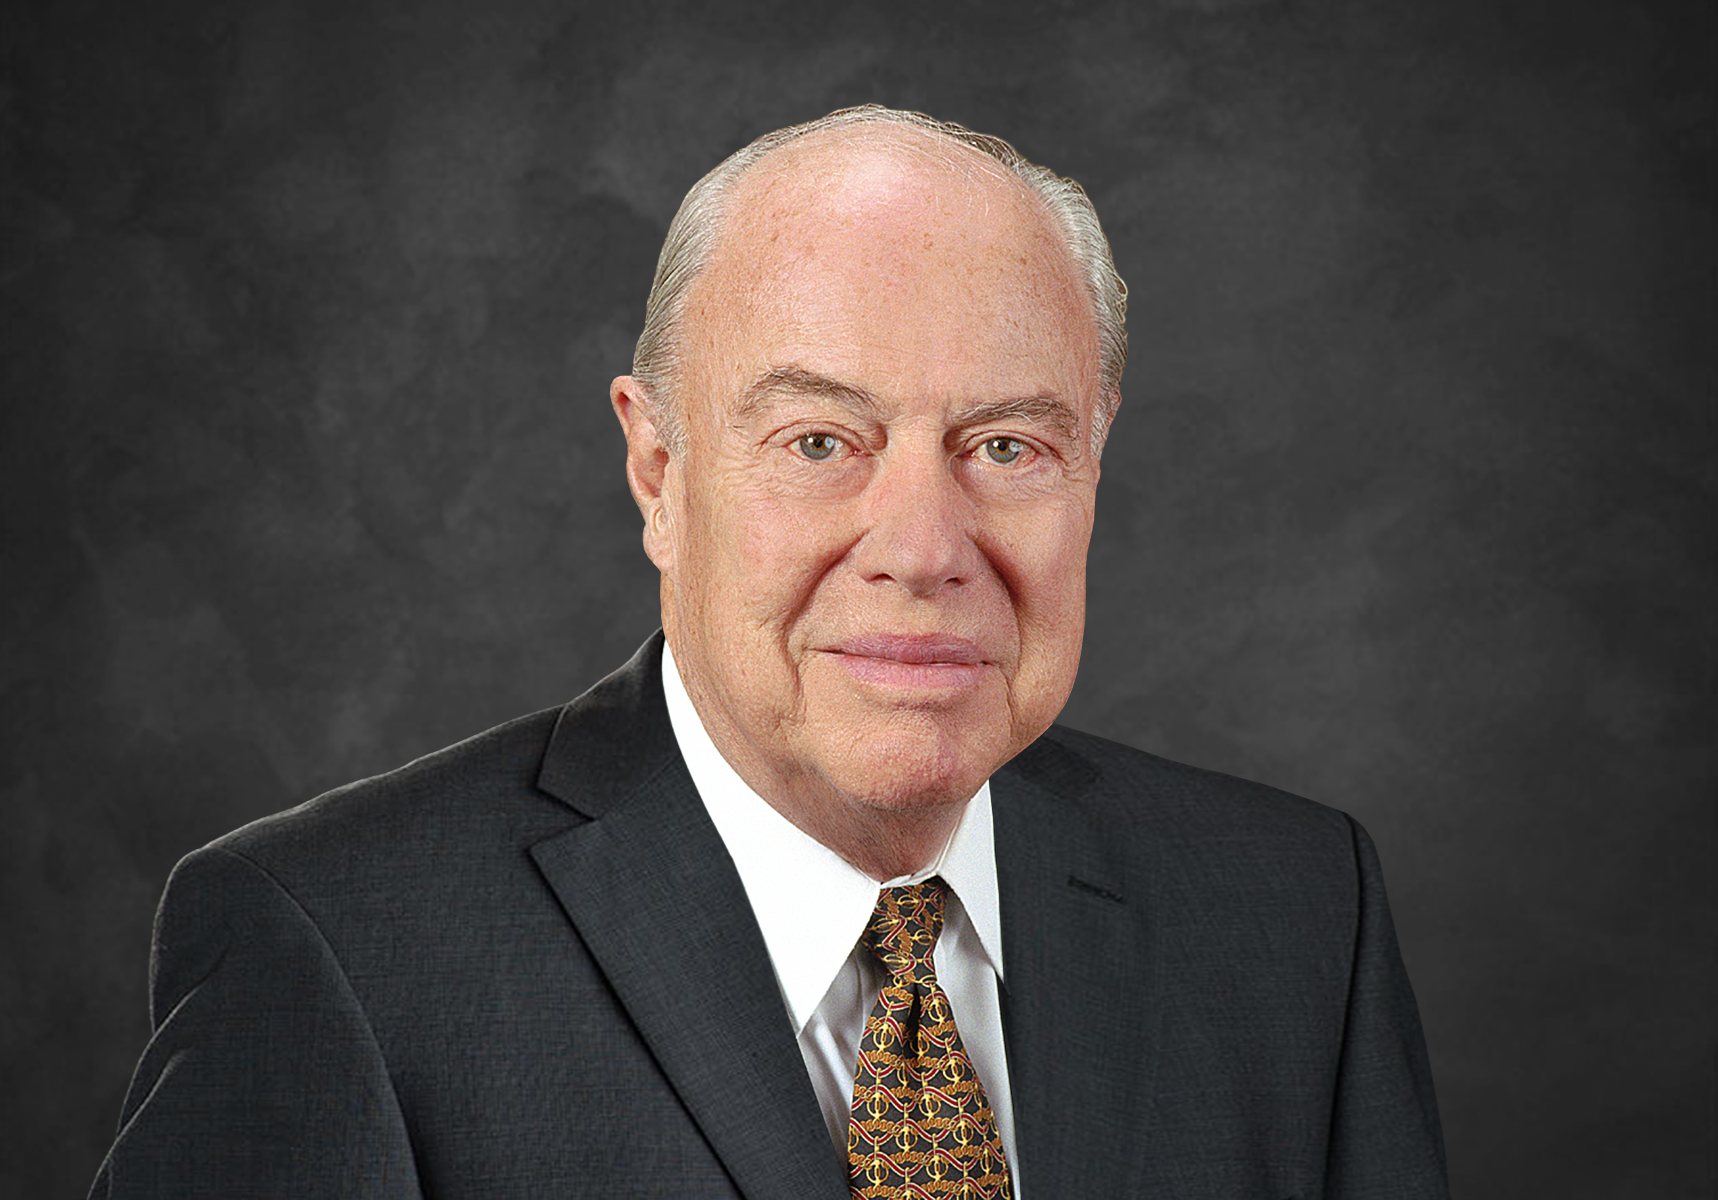 Hugh J. Zimmer, real estate developer, civic leader and philanthropist dies at 88